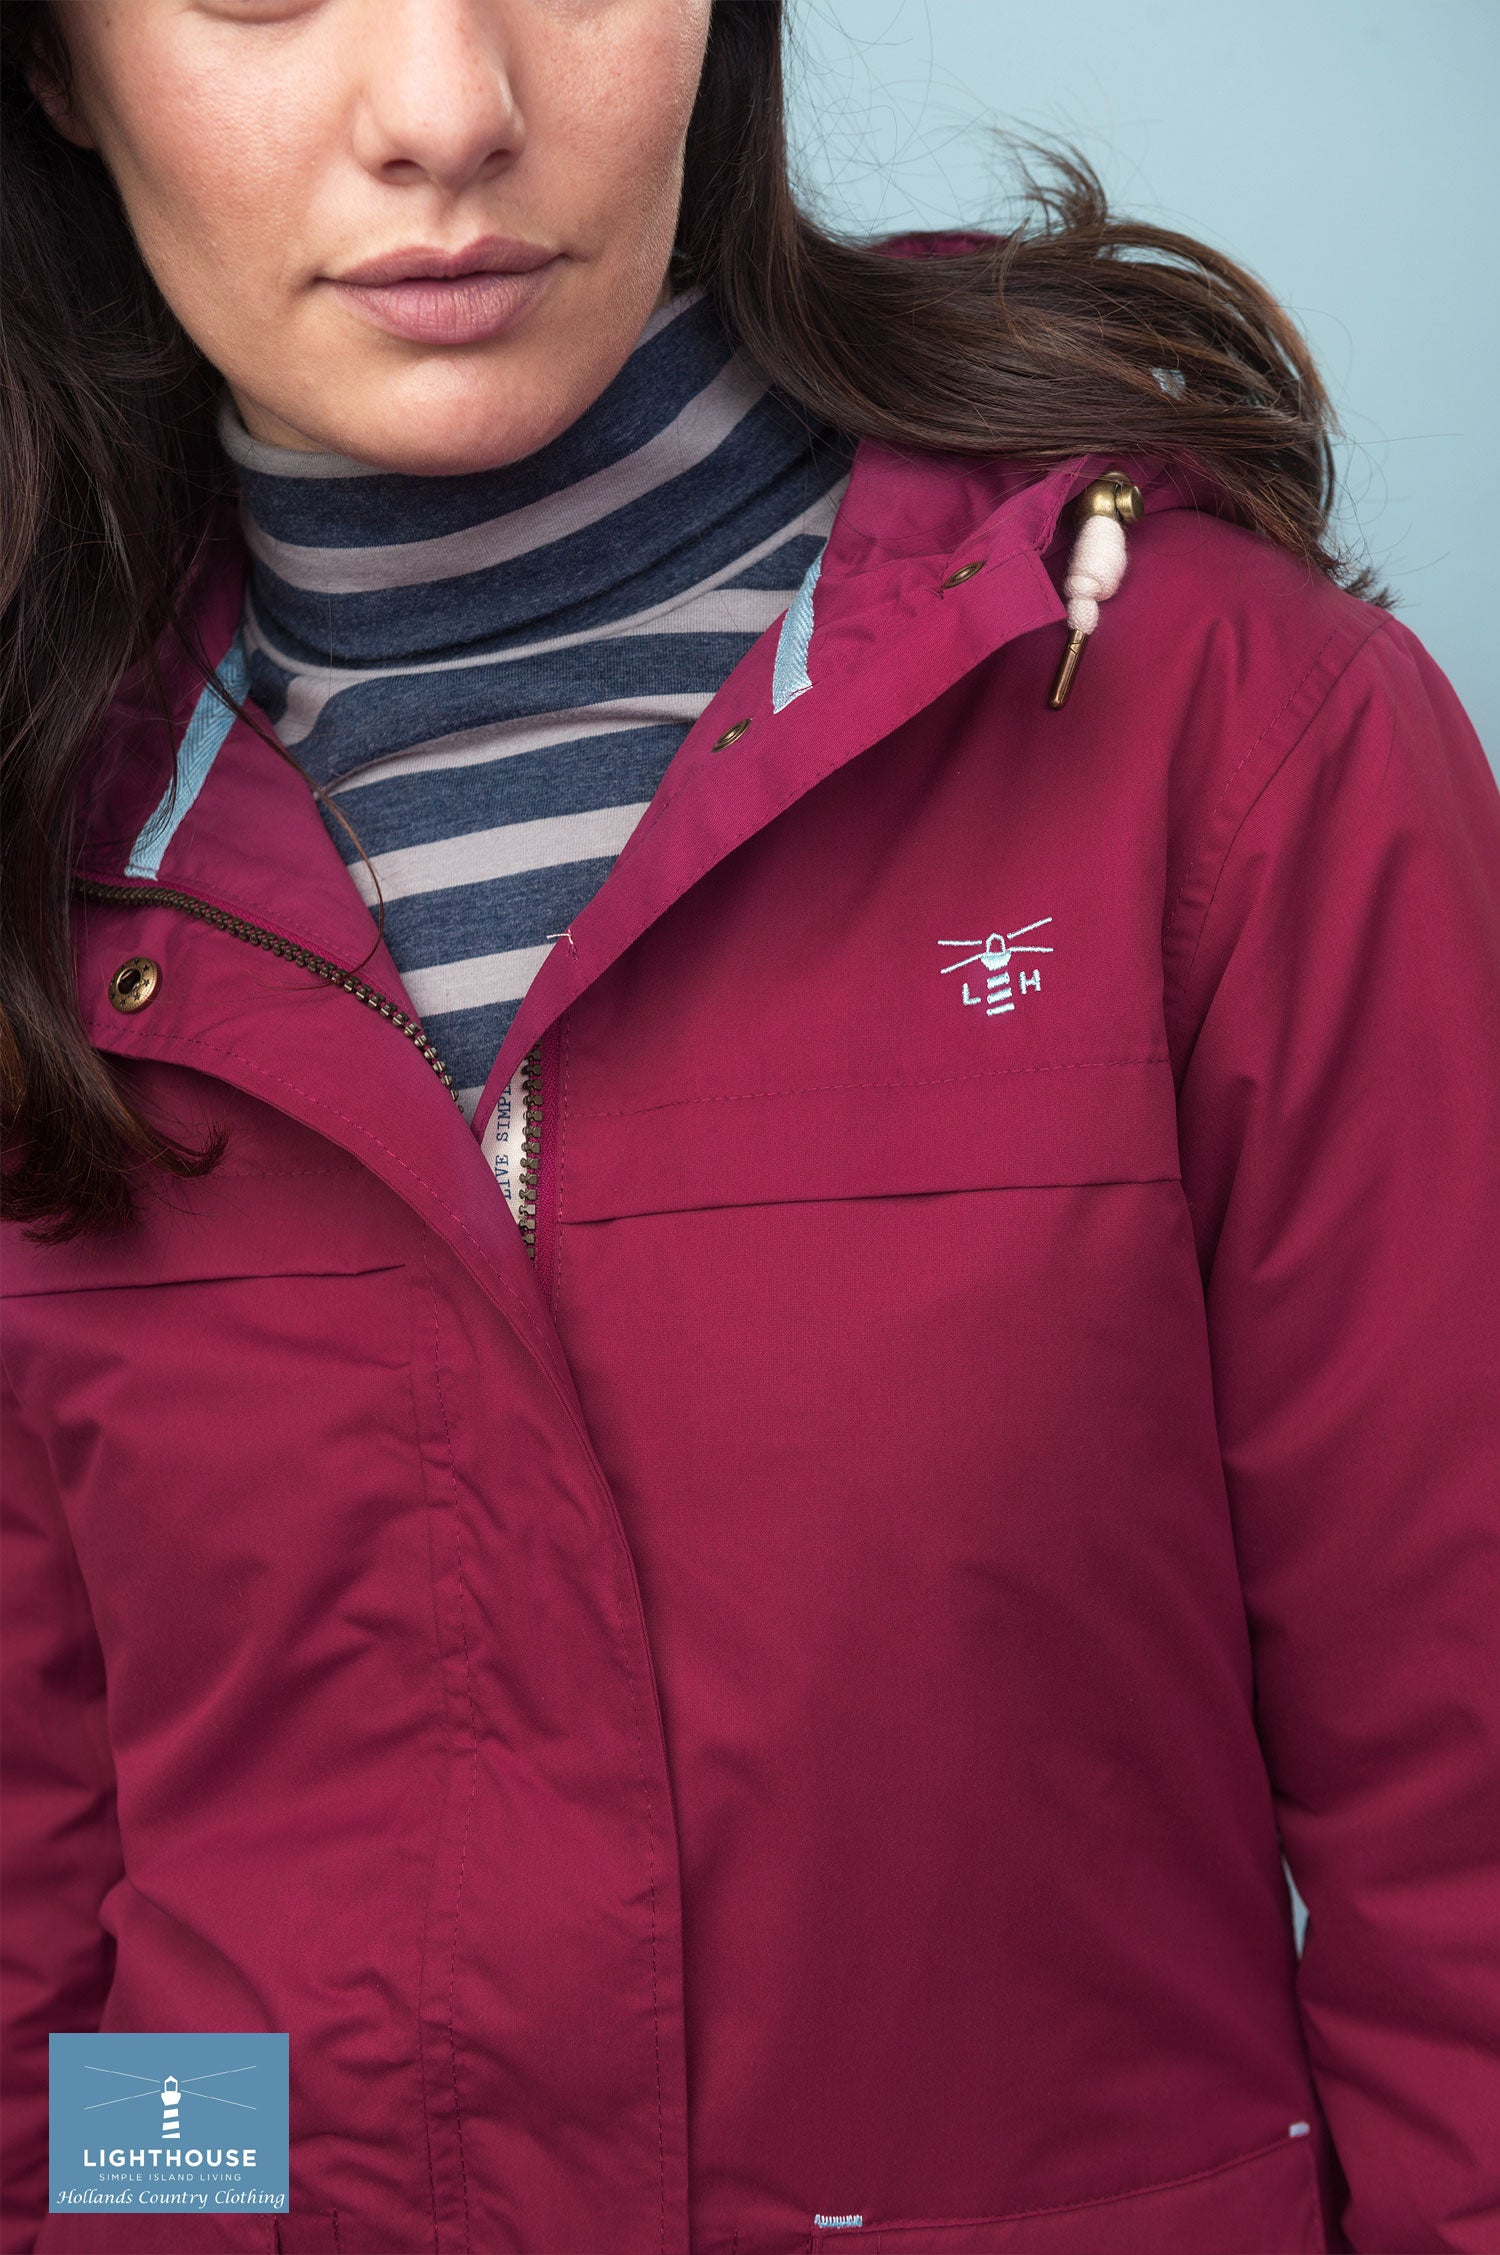 collar detail Beaufort Waterproof Jacket by Lighthouse